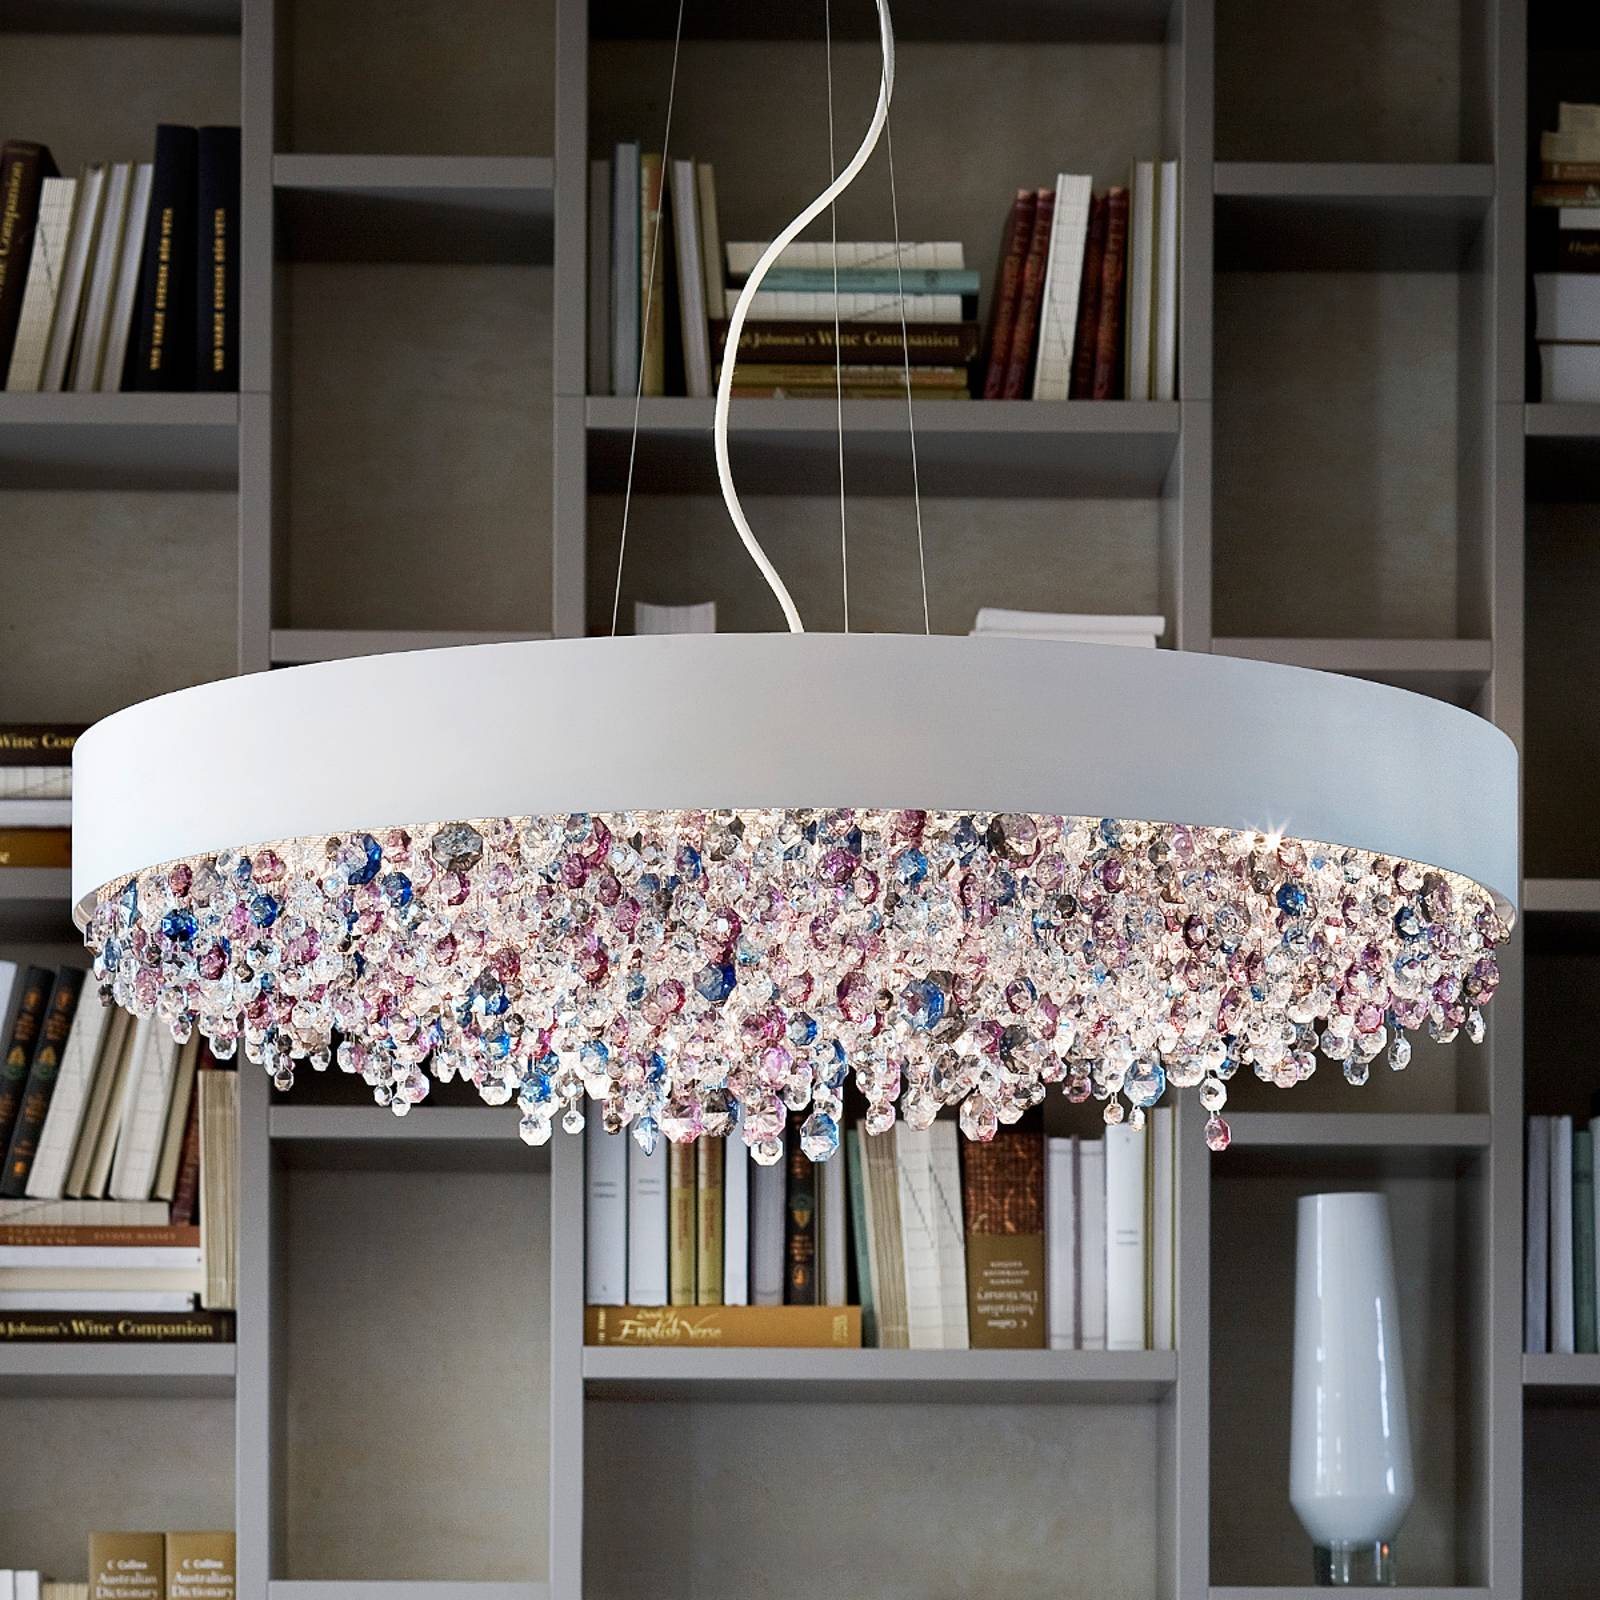 Fascinating hanging light Ola S6 90, cold white from Masiero